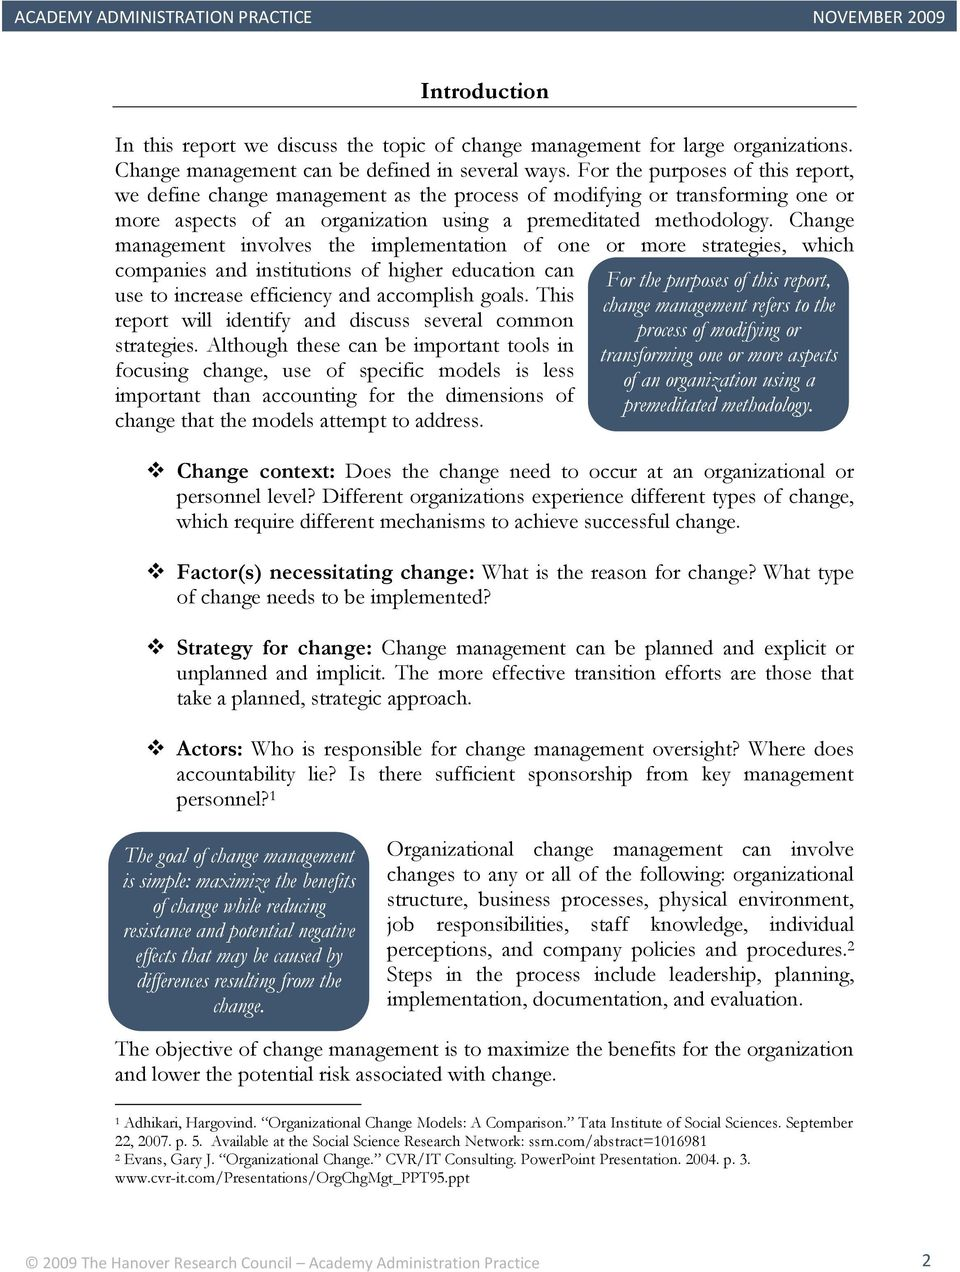 Best Practices in Change Management - PDF